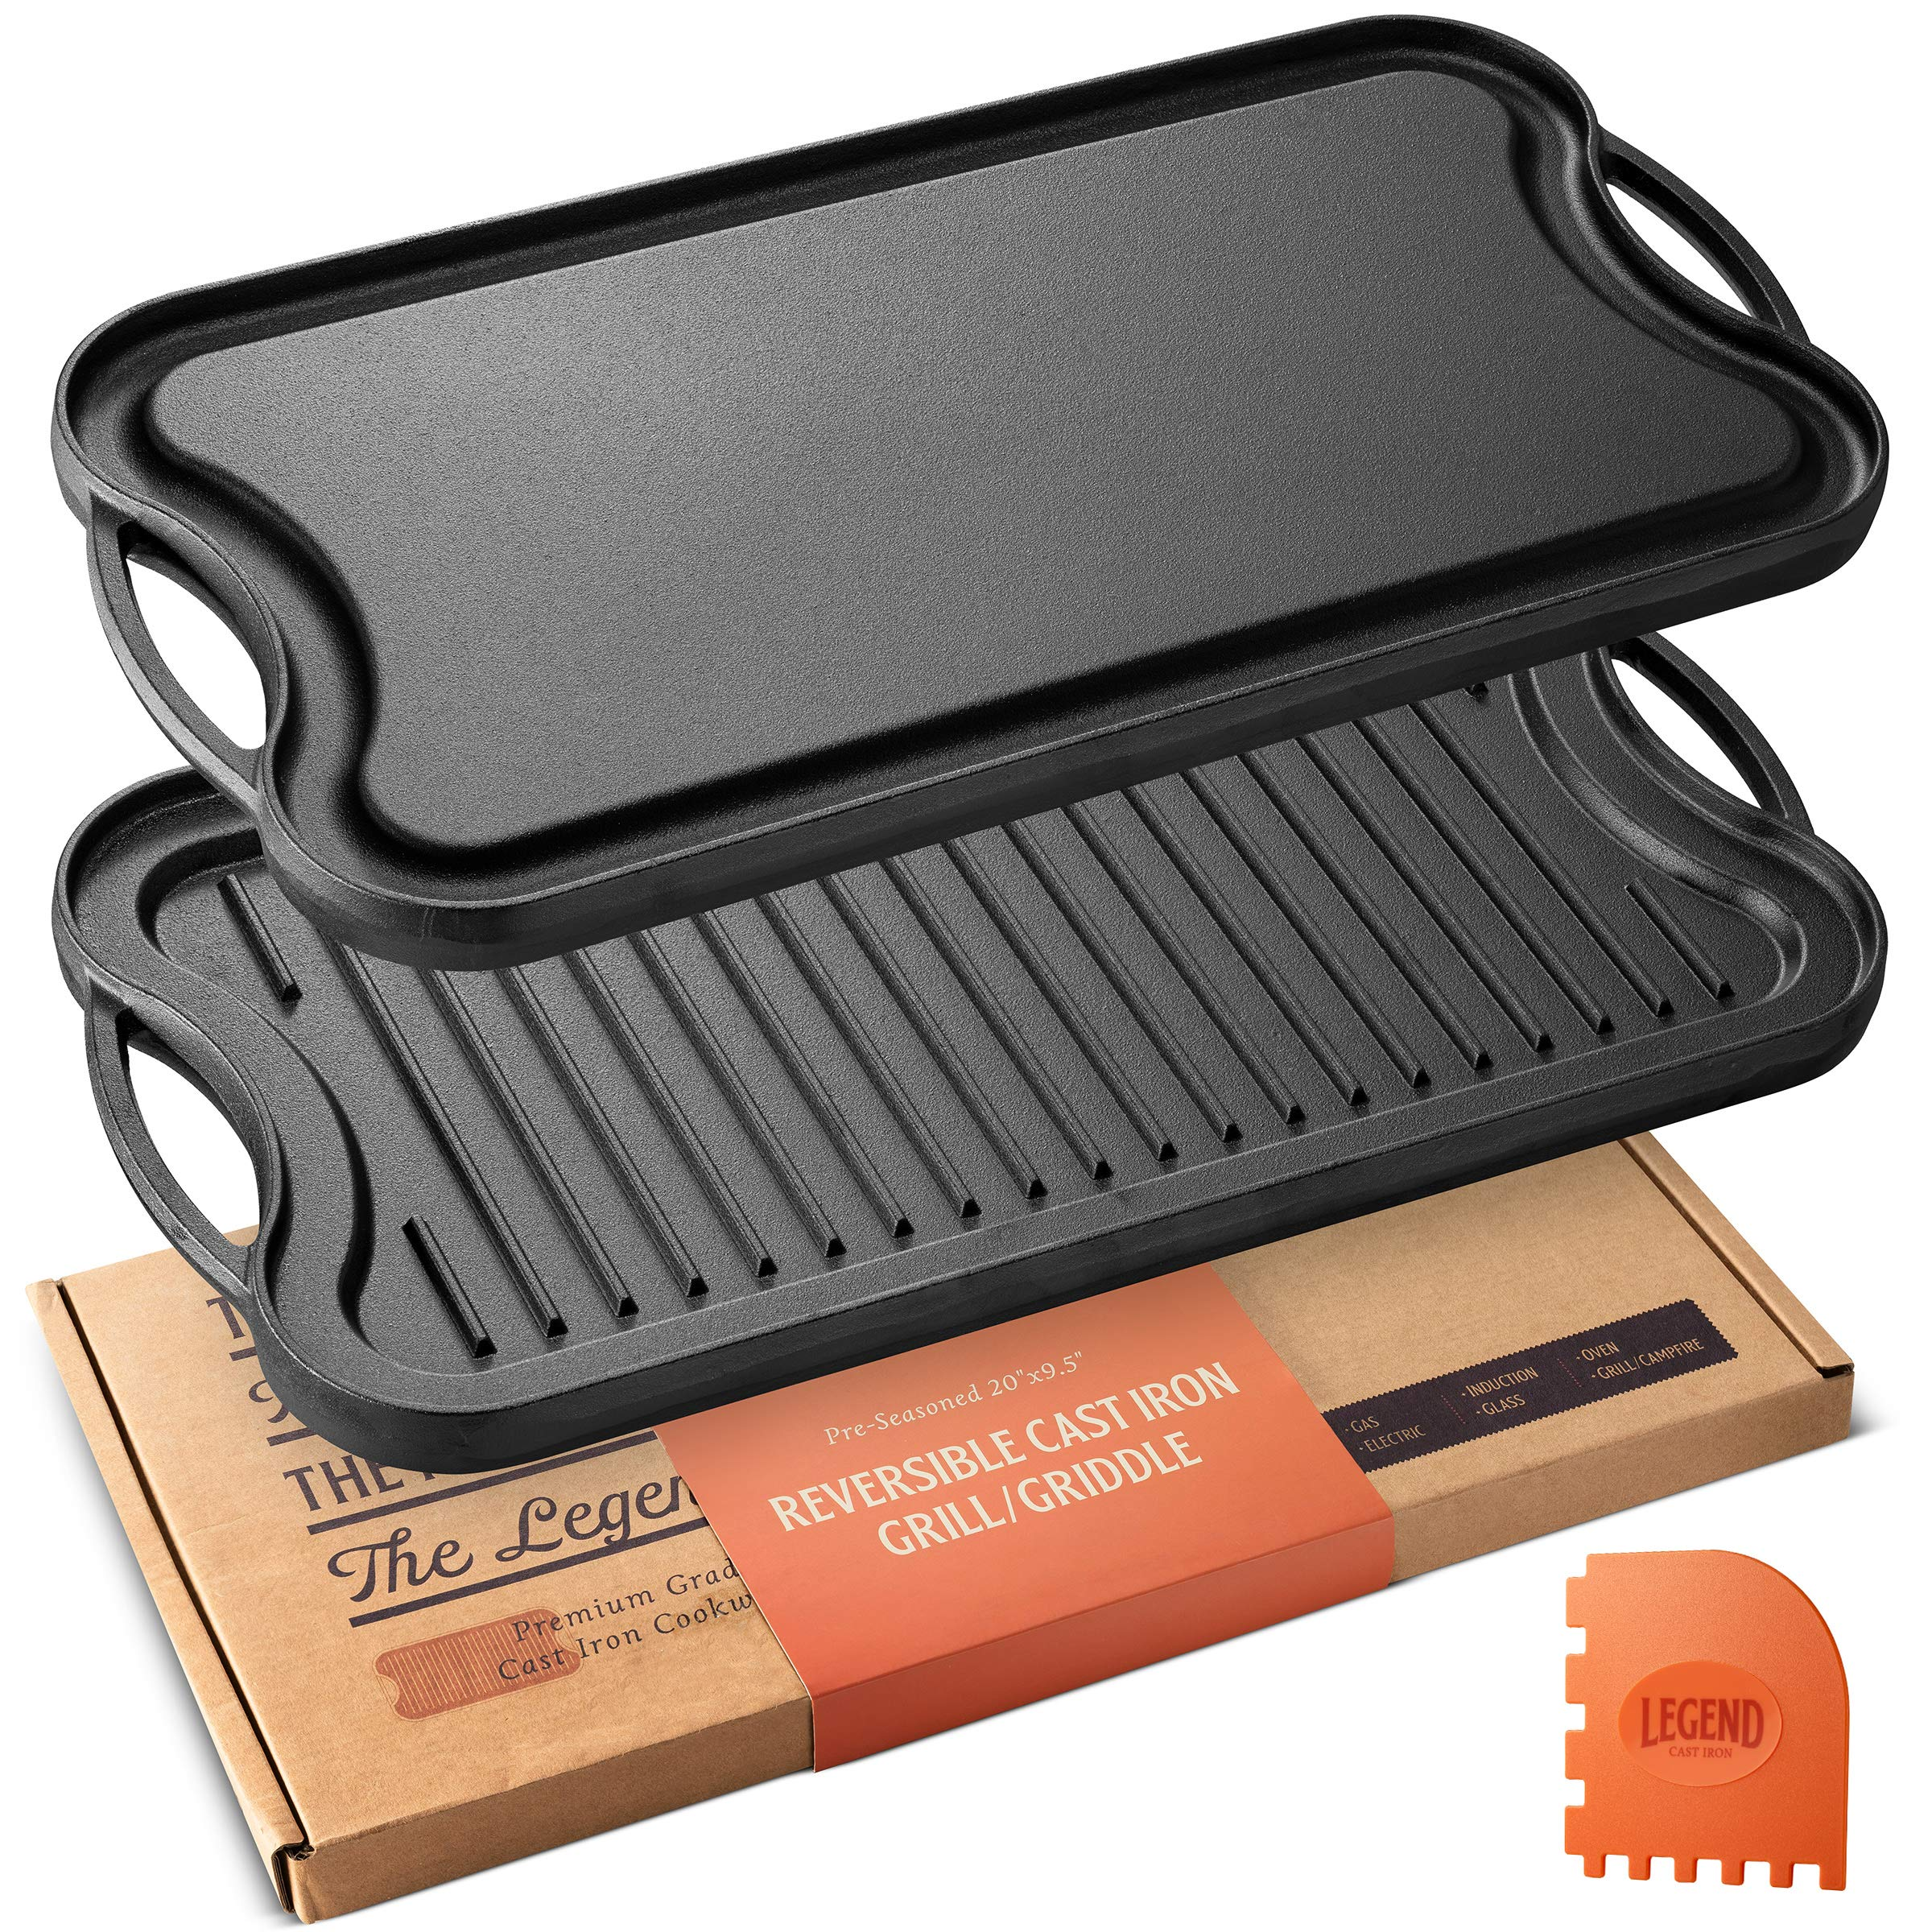 Legend Cast Iron Griddle for Gas Stovetop | 2-in-1 Reversible 20'' Cast Iron Grill Pan For Stovetop with Easy Grip Handles | Use On Open Fire & In Oven | Lightly Pre-Seasoned Gets Better with Each Use by Legend Cast Iron